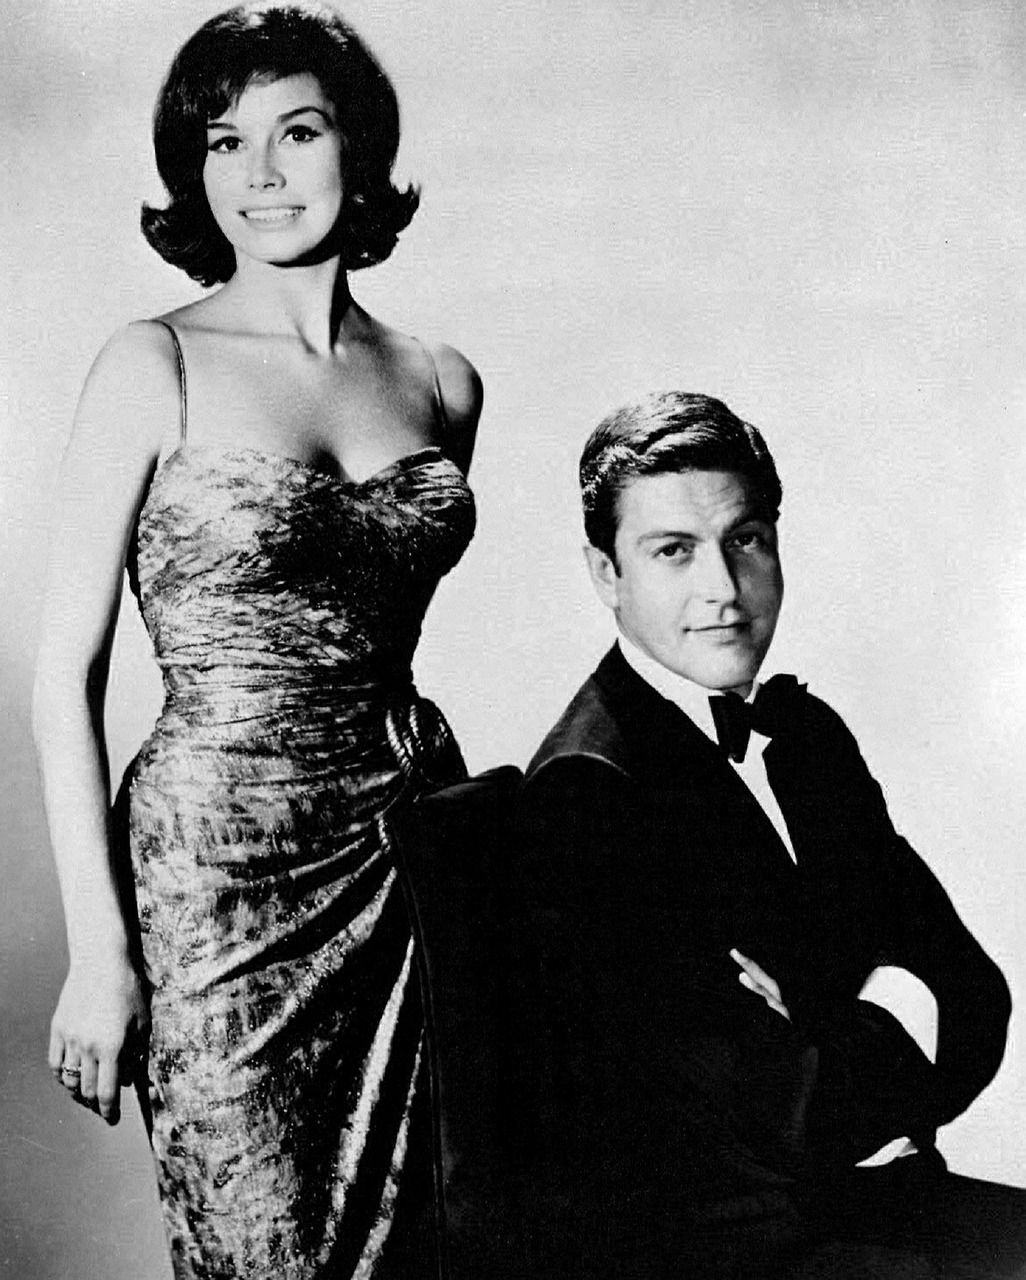 mary tyler moore,dick van dyke,actress,actor,television,tv,retro,vintage,series,dick van dyke show,60's,sitcom,comedy,award winning,family,entertainment,free pictures, free photos, free images, royalty free, free illustrations